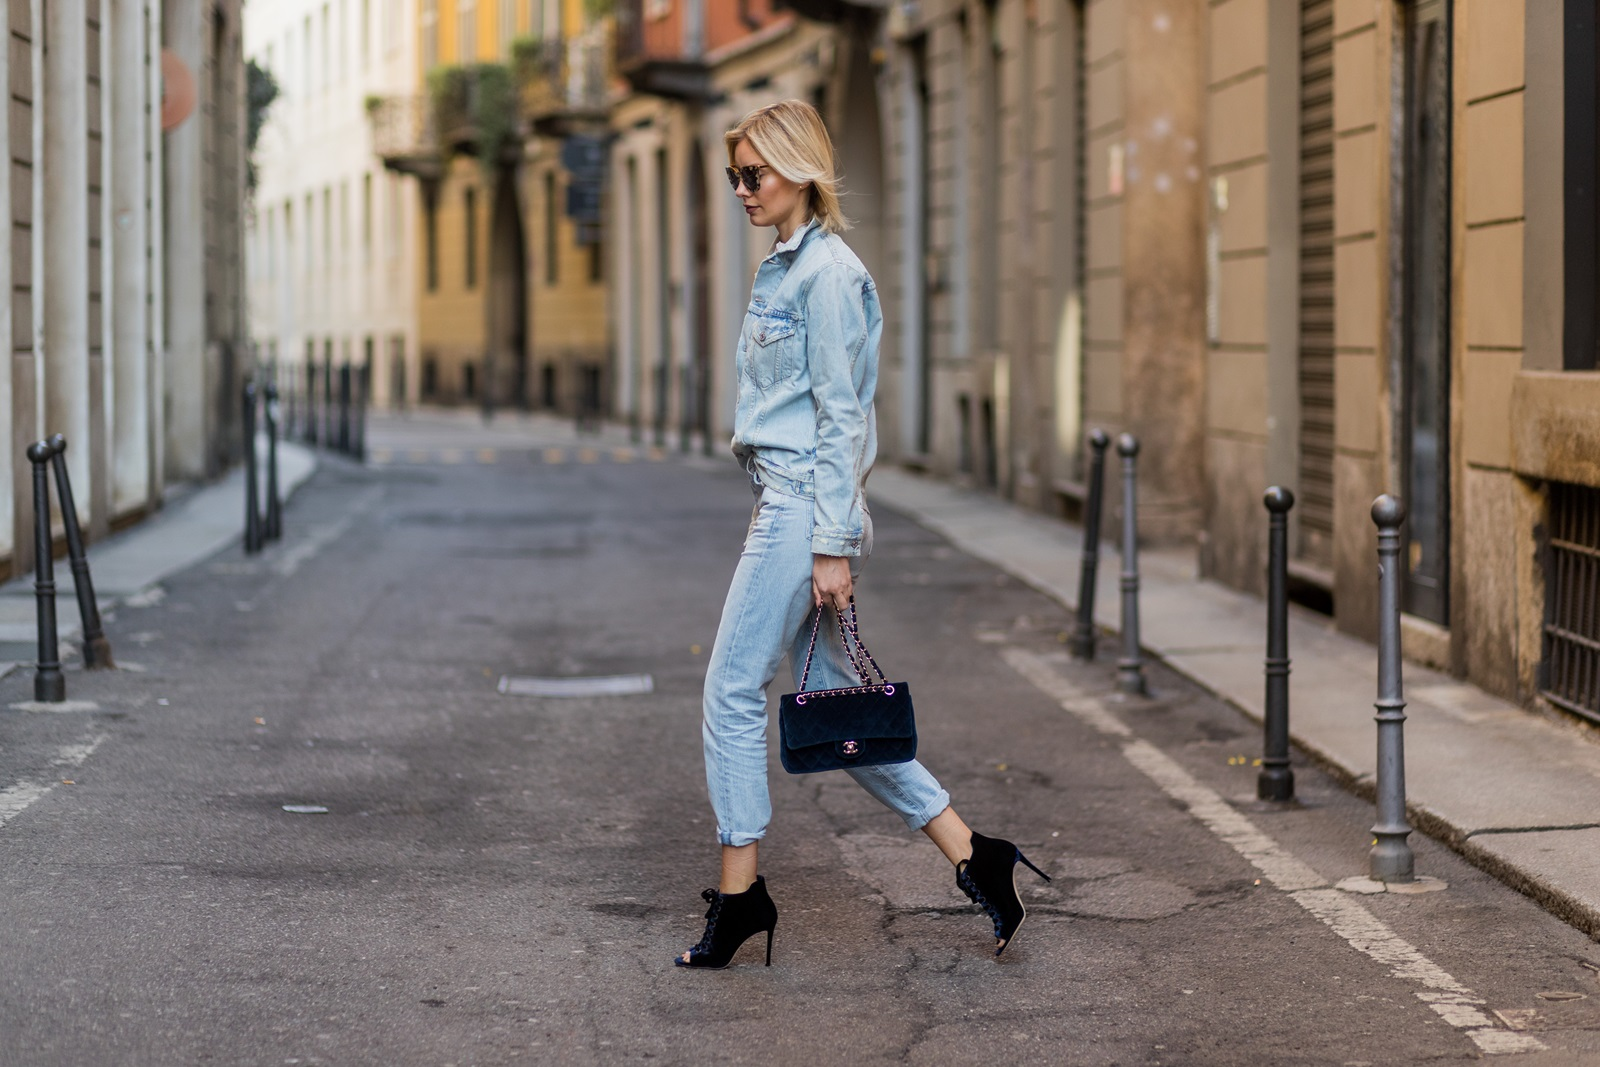 MILAN, ITALY - FEBRUARY 26: Lisa Hahnbueck wearing CITIZENS OF HUMANITY DENIM BOYFRIEND JACKET JASPER, CITIZENS OF HUMANITY LIYA HIGH RISE Jeans, GIAMBATTISTA VALLI SILK TOP WITH LACE, JIMMY CHOO MAVI VELVET BOOTS, CHANEL VELVET CLASSIC FLAP BAG, Prada Sunglasses during Milan Fashion Week Fall/Winter 2017/18 on February 26, 2017 in Milan, Italy. (Photo by Christian Vierig/Getty Images) *** Local Caption *** Lisa Hahnbueck